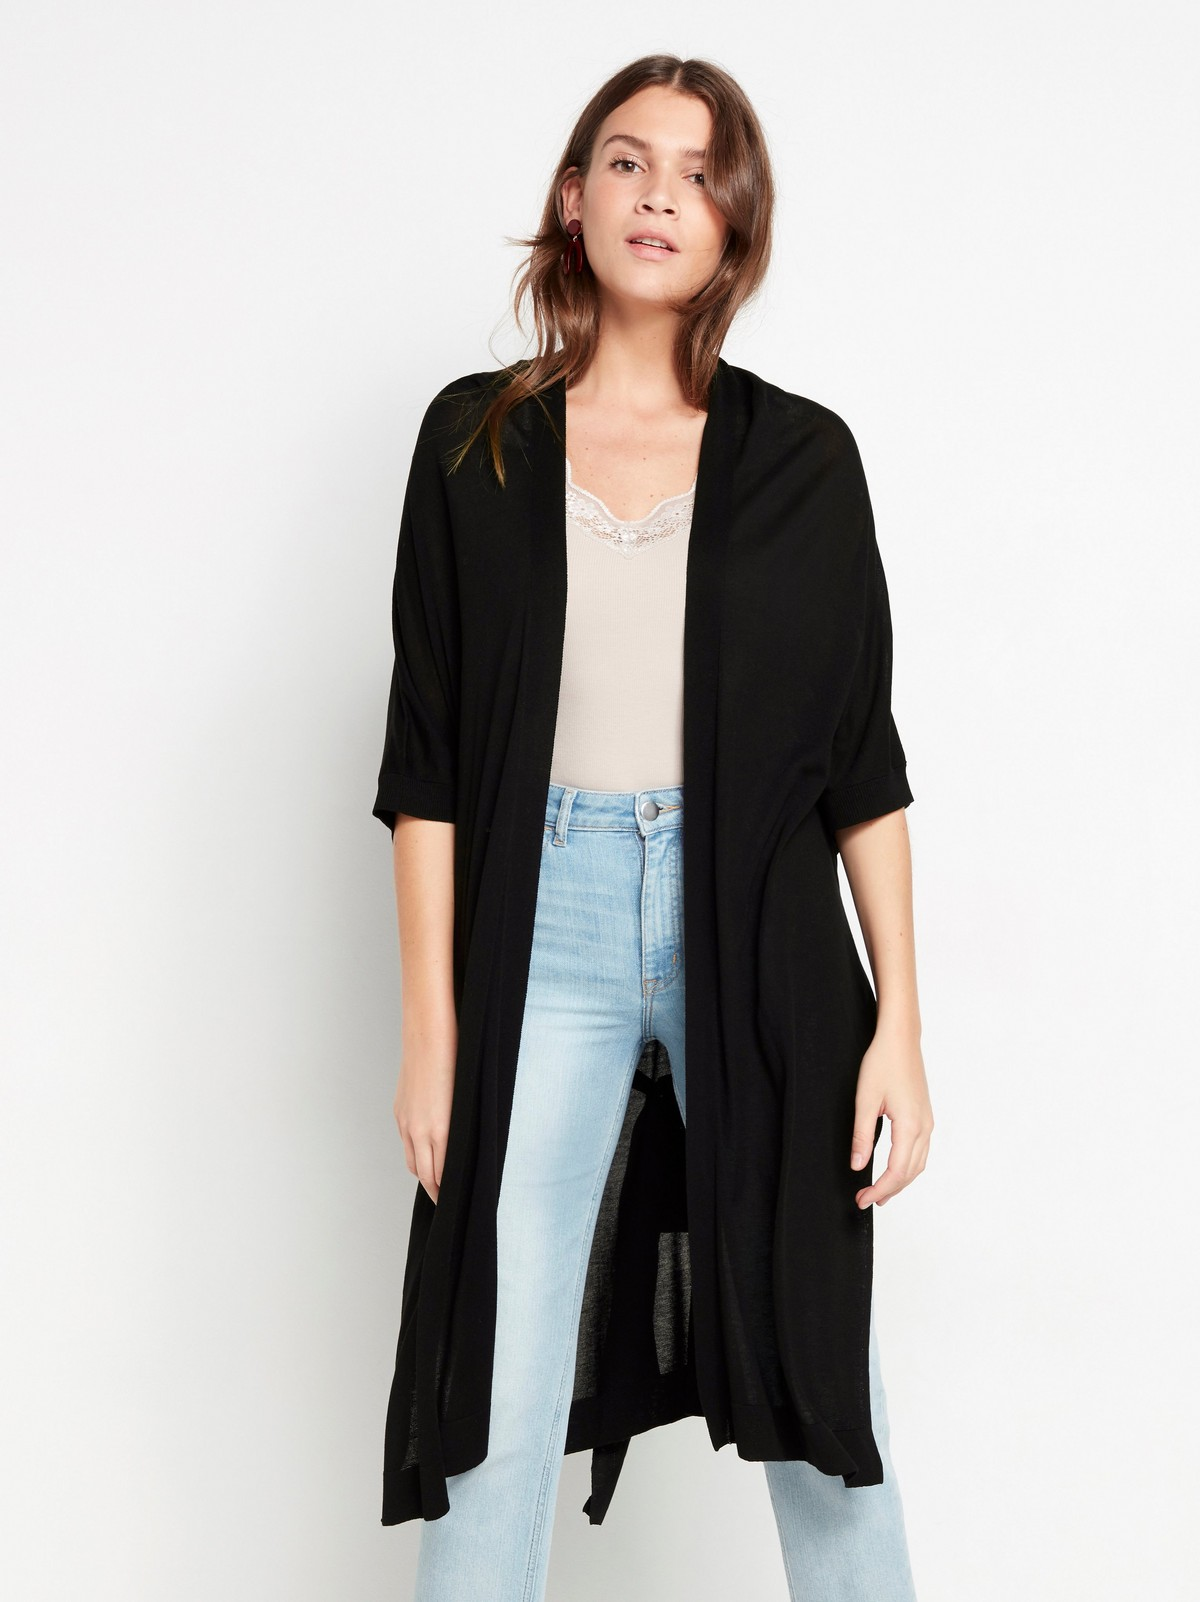 Black cardigan in lyocell blend with tie belt